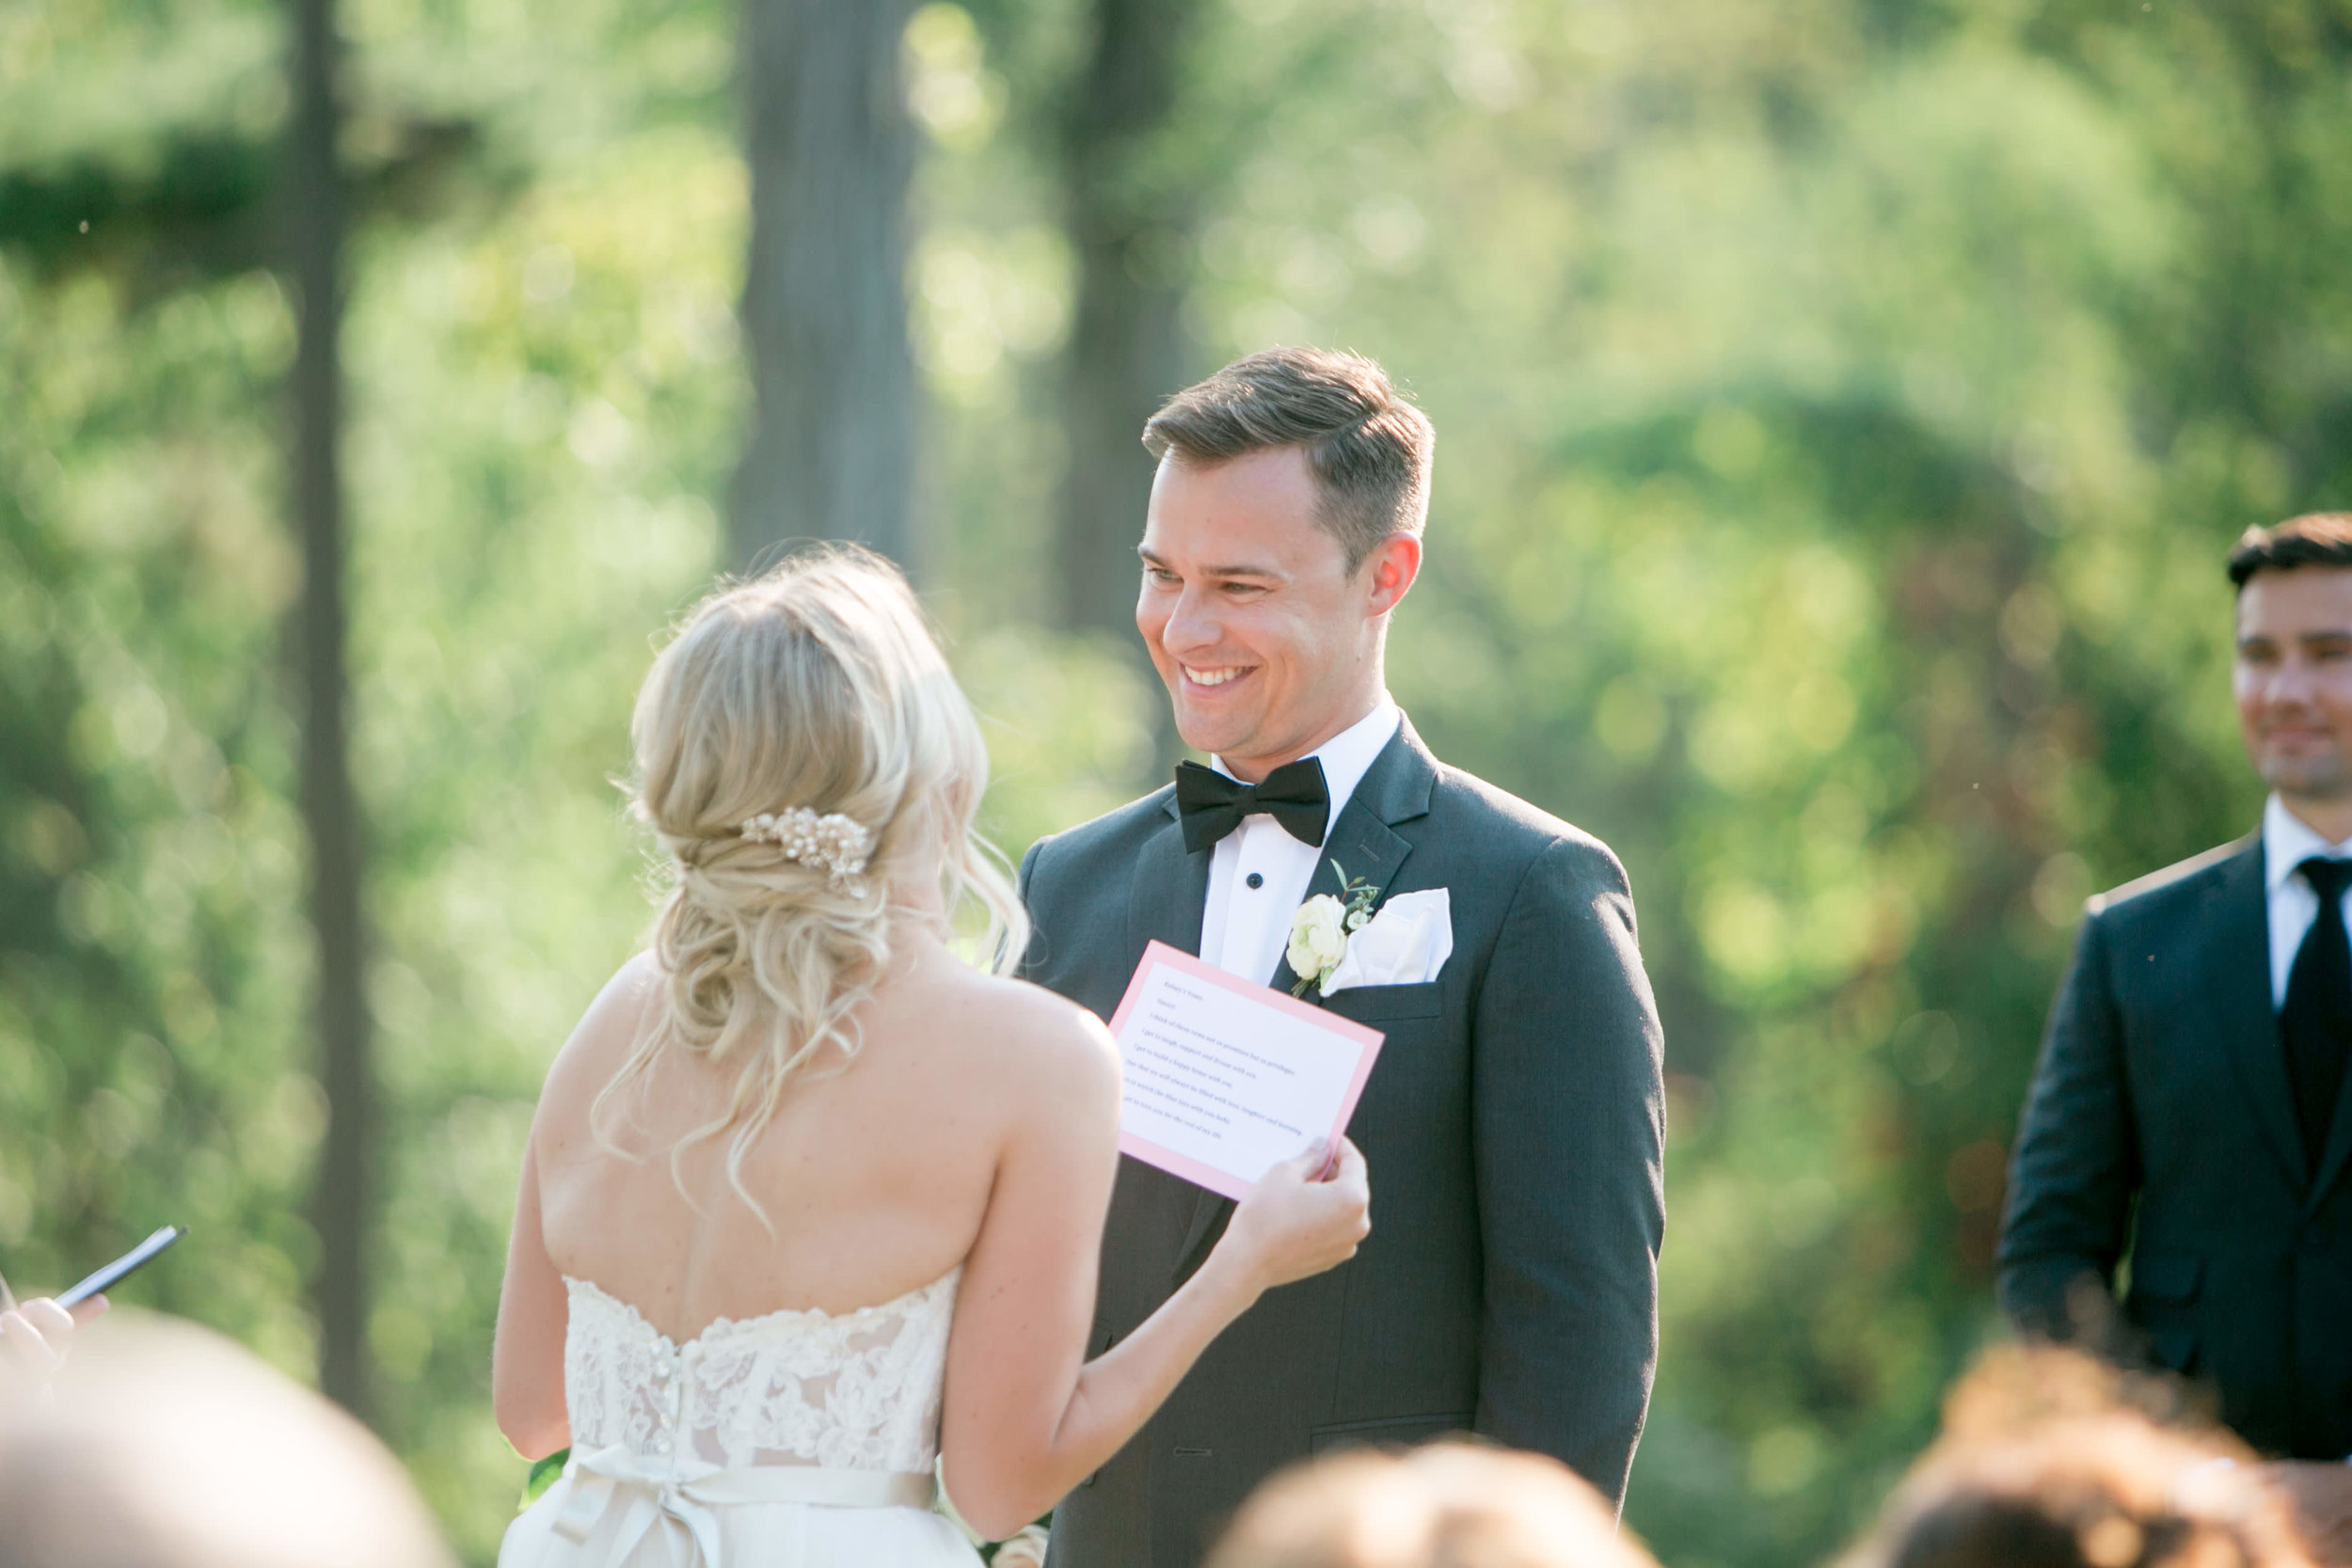 Kelsey___Daniel___High_Res_Finals___Daniel_Ricci_Weddings_397.jpg